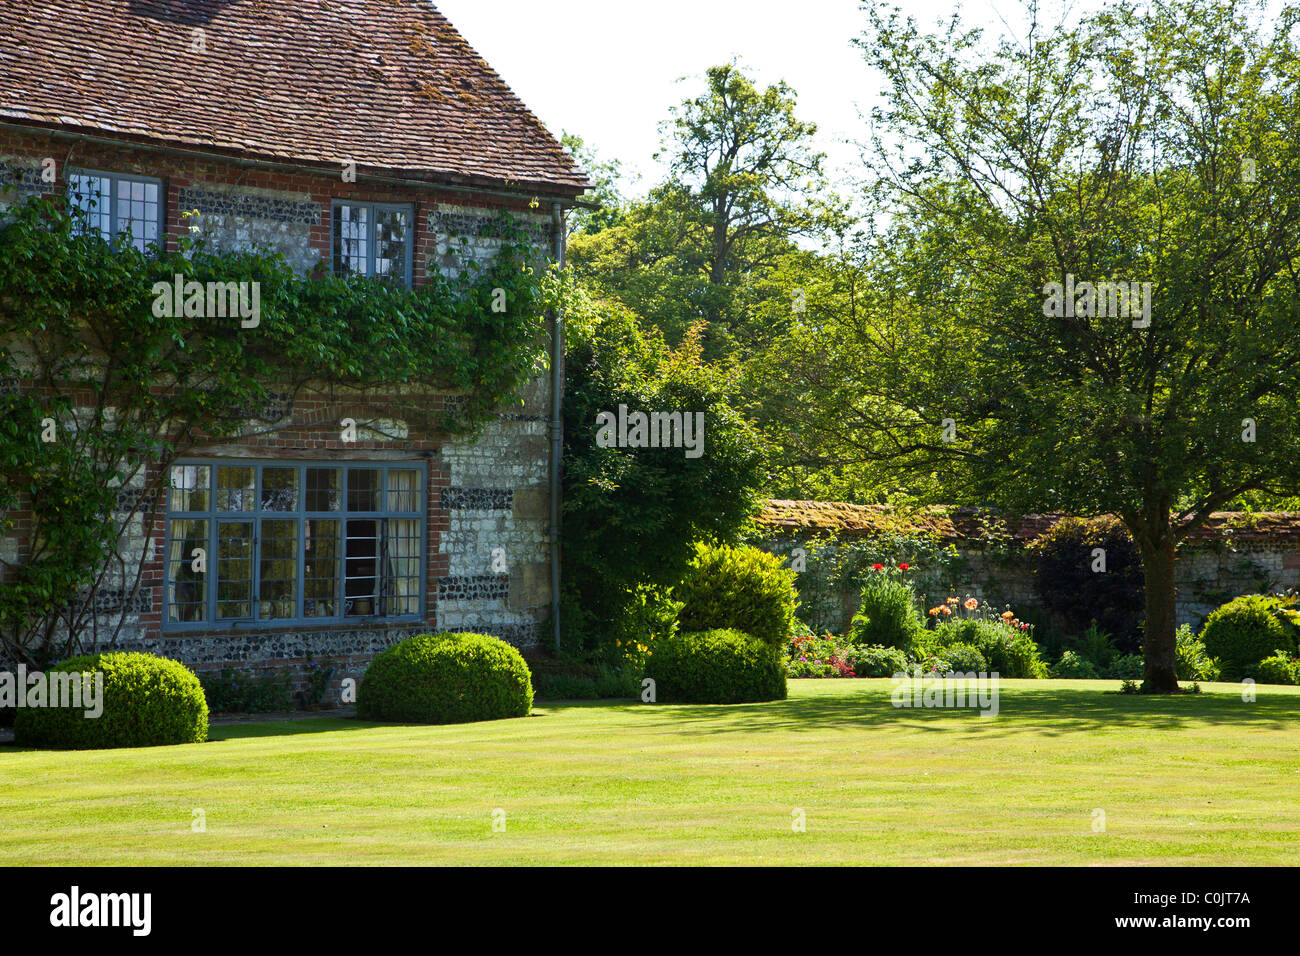 The Walled Garden And Lawn Of An English Country House In Wiltshire England UK